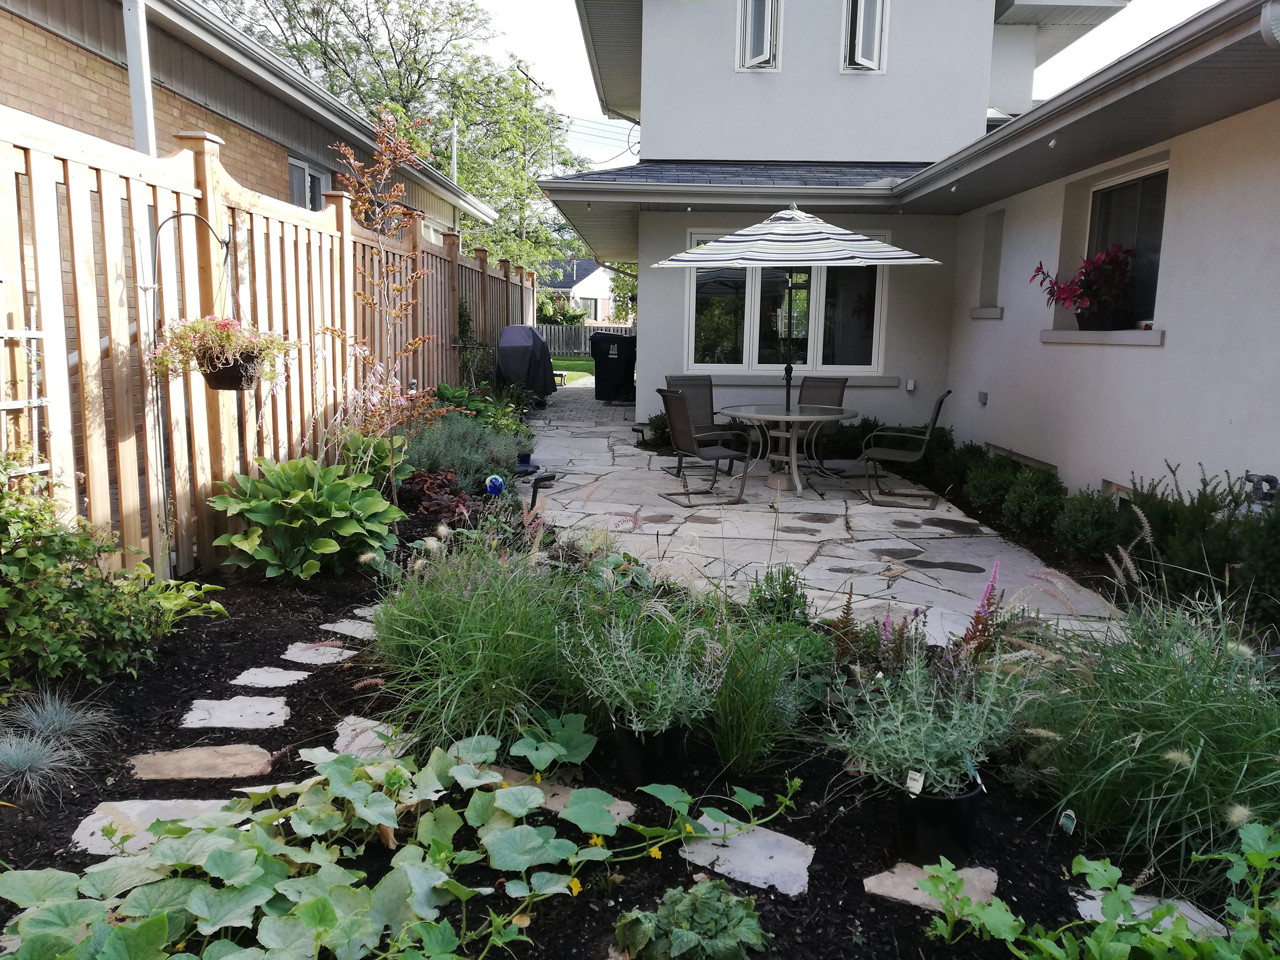 Natural landscape with stone patio